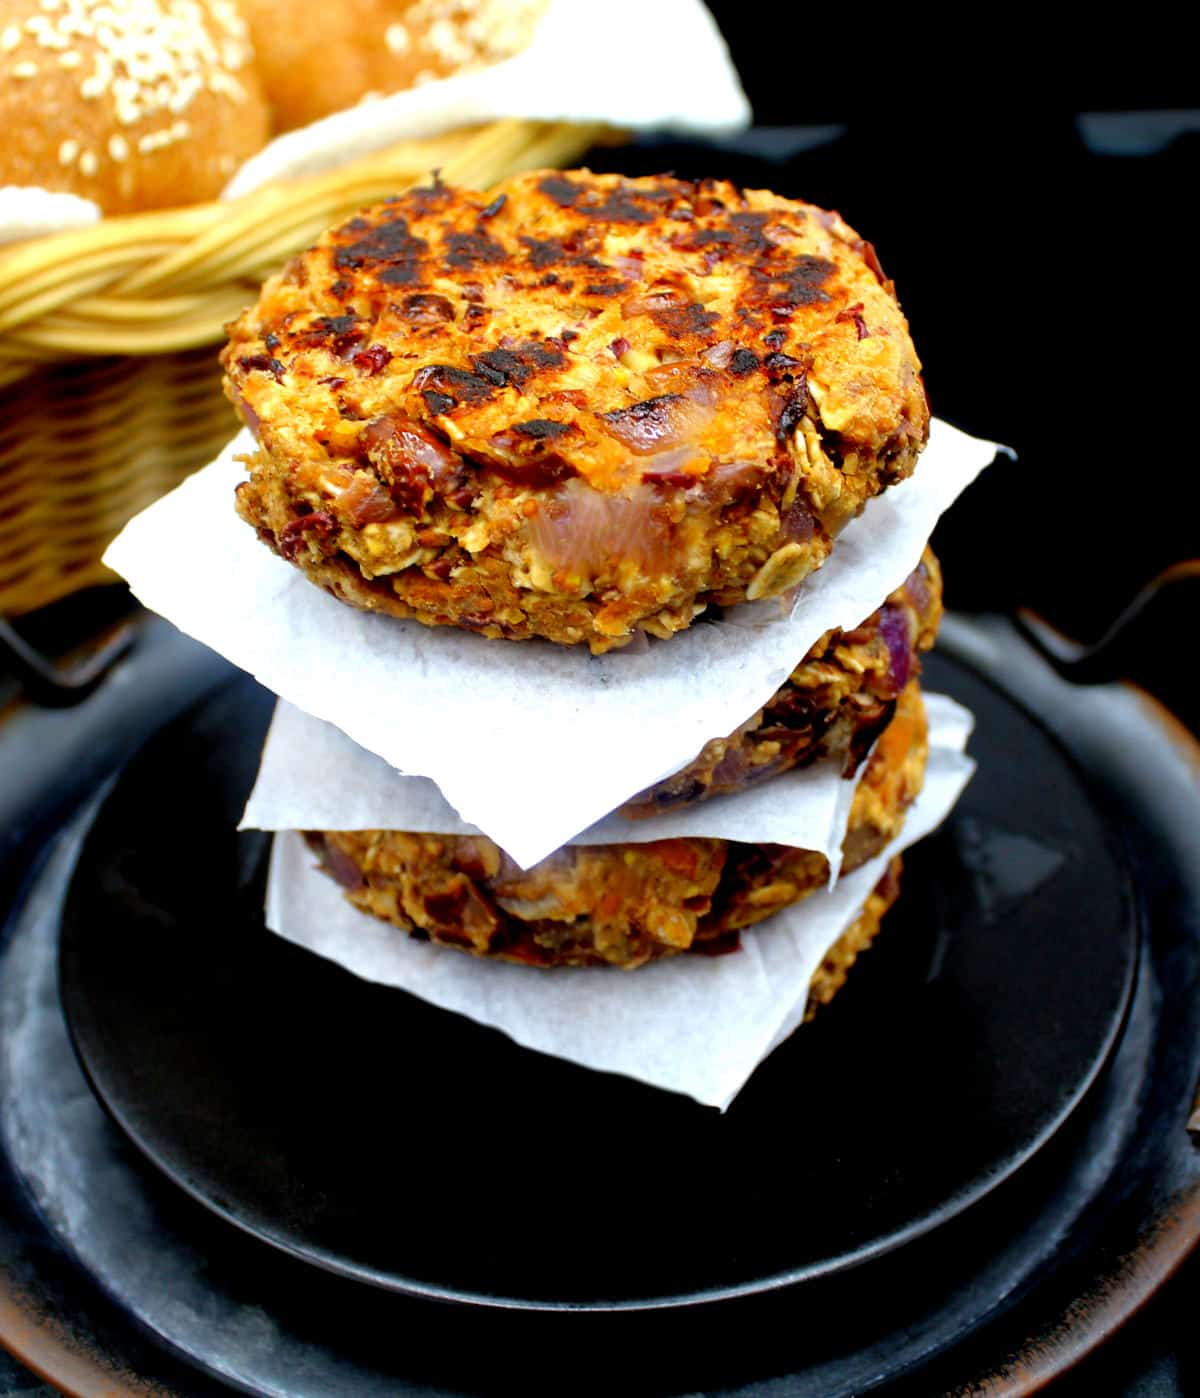 Photo of four bean and oats burger patties separated with parchment stacked on a black plate.